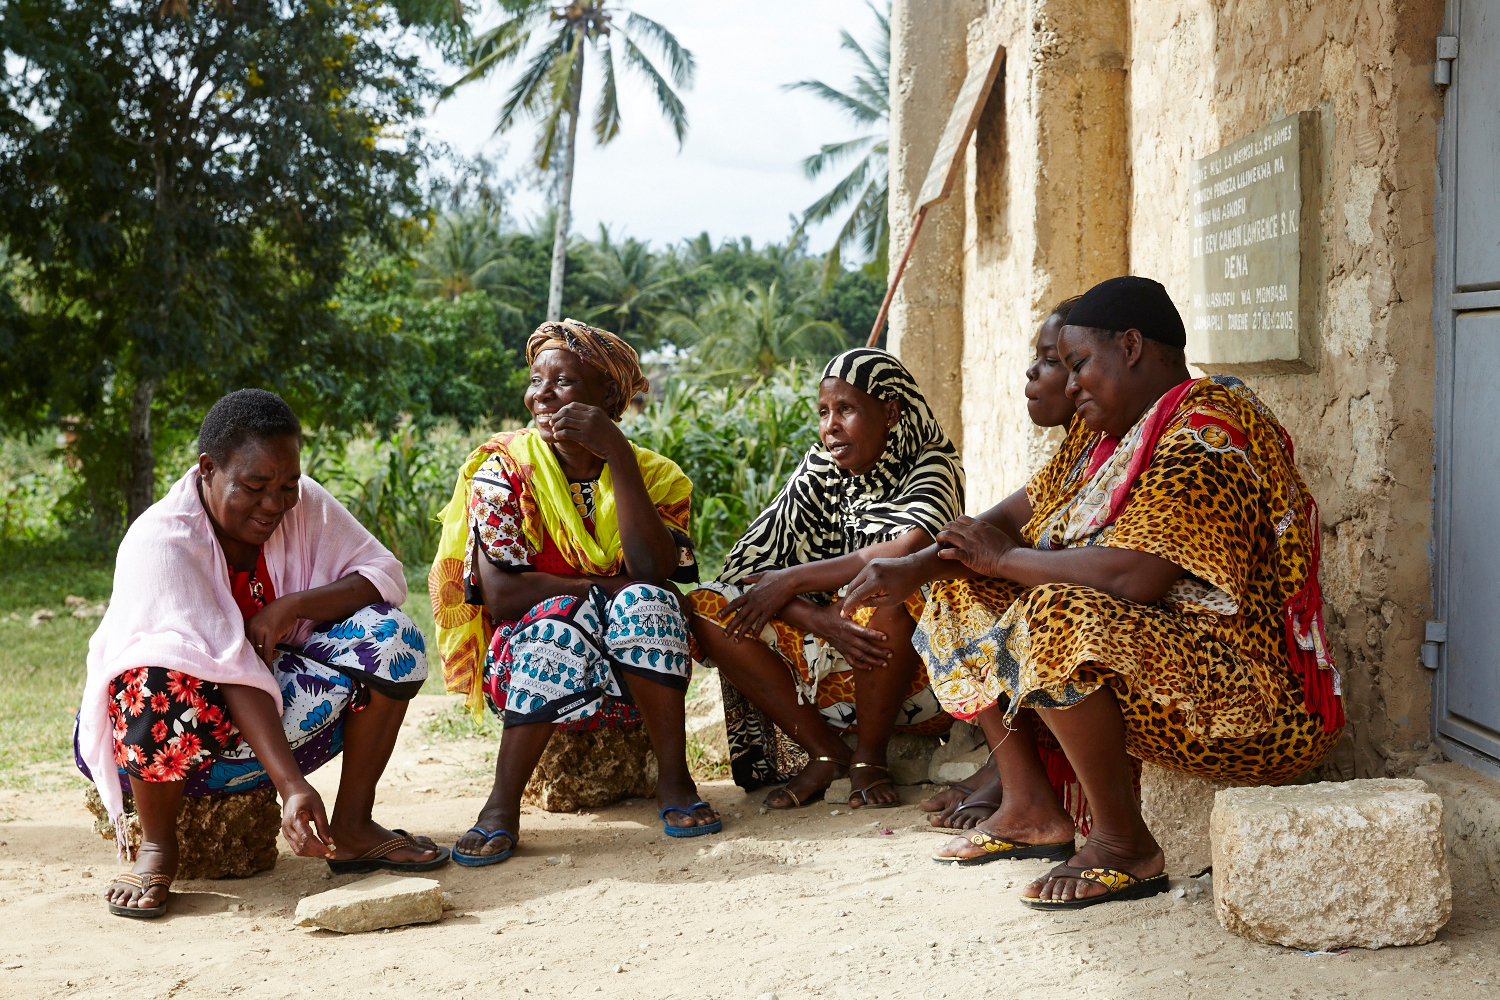 Members of the Sauti ya Wanawake (The Voice of Women) meet to discuss gender-based violence issues, and cases they are supporting. Mwakirunge, Mombasa, June 2016